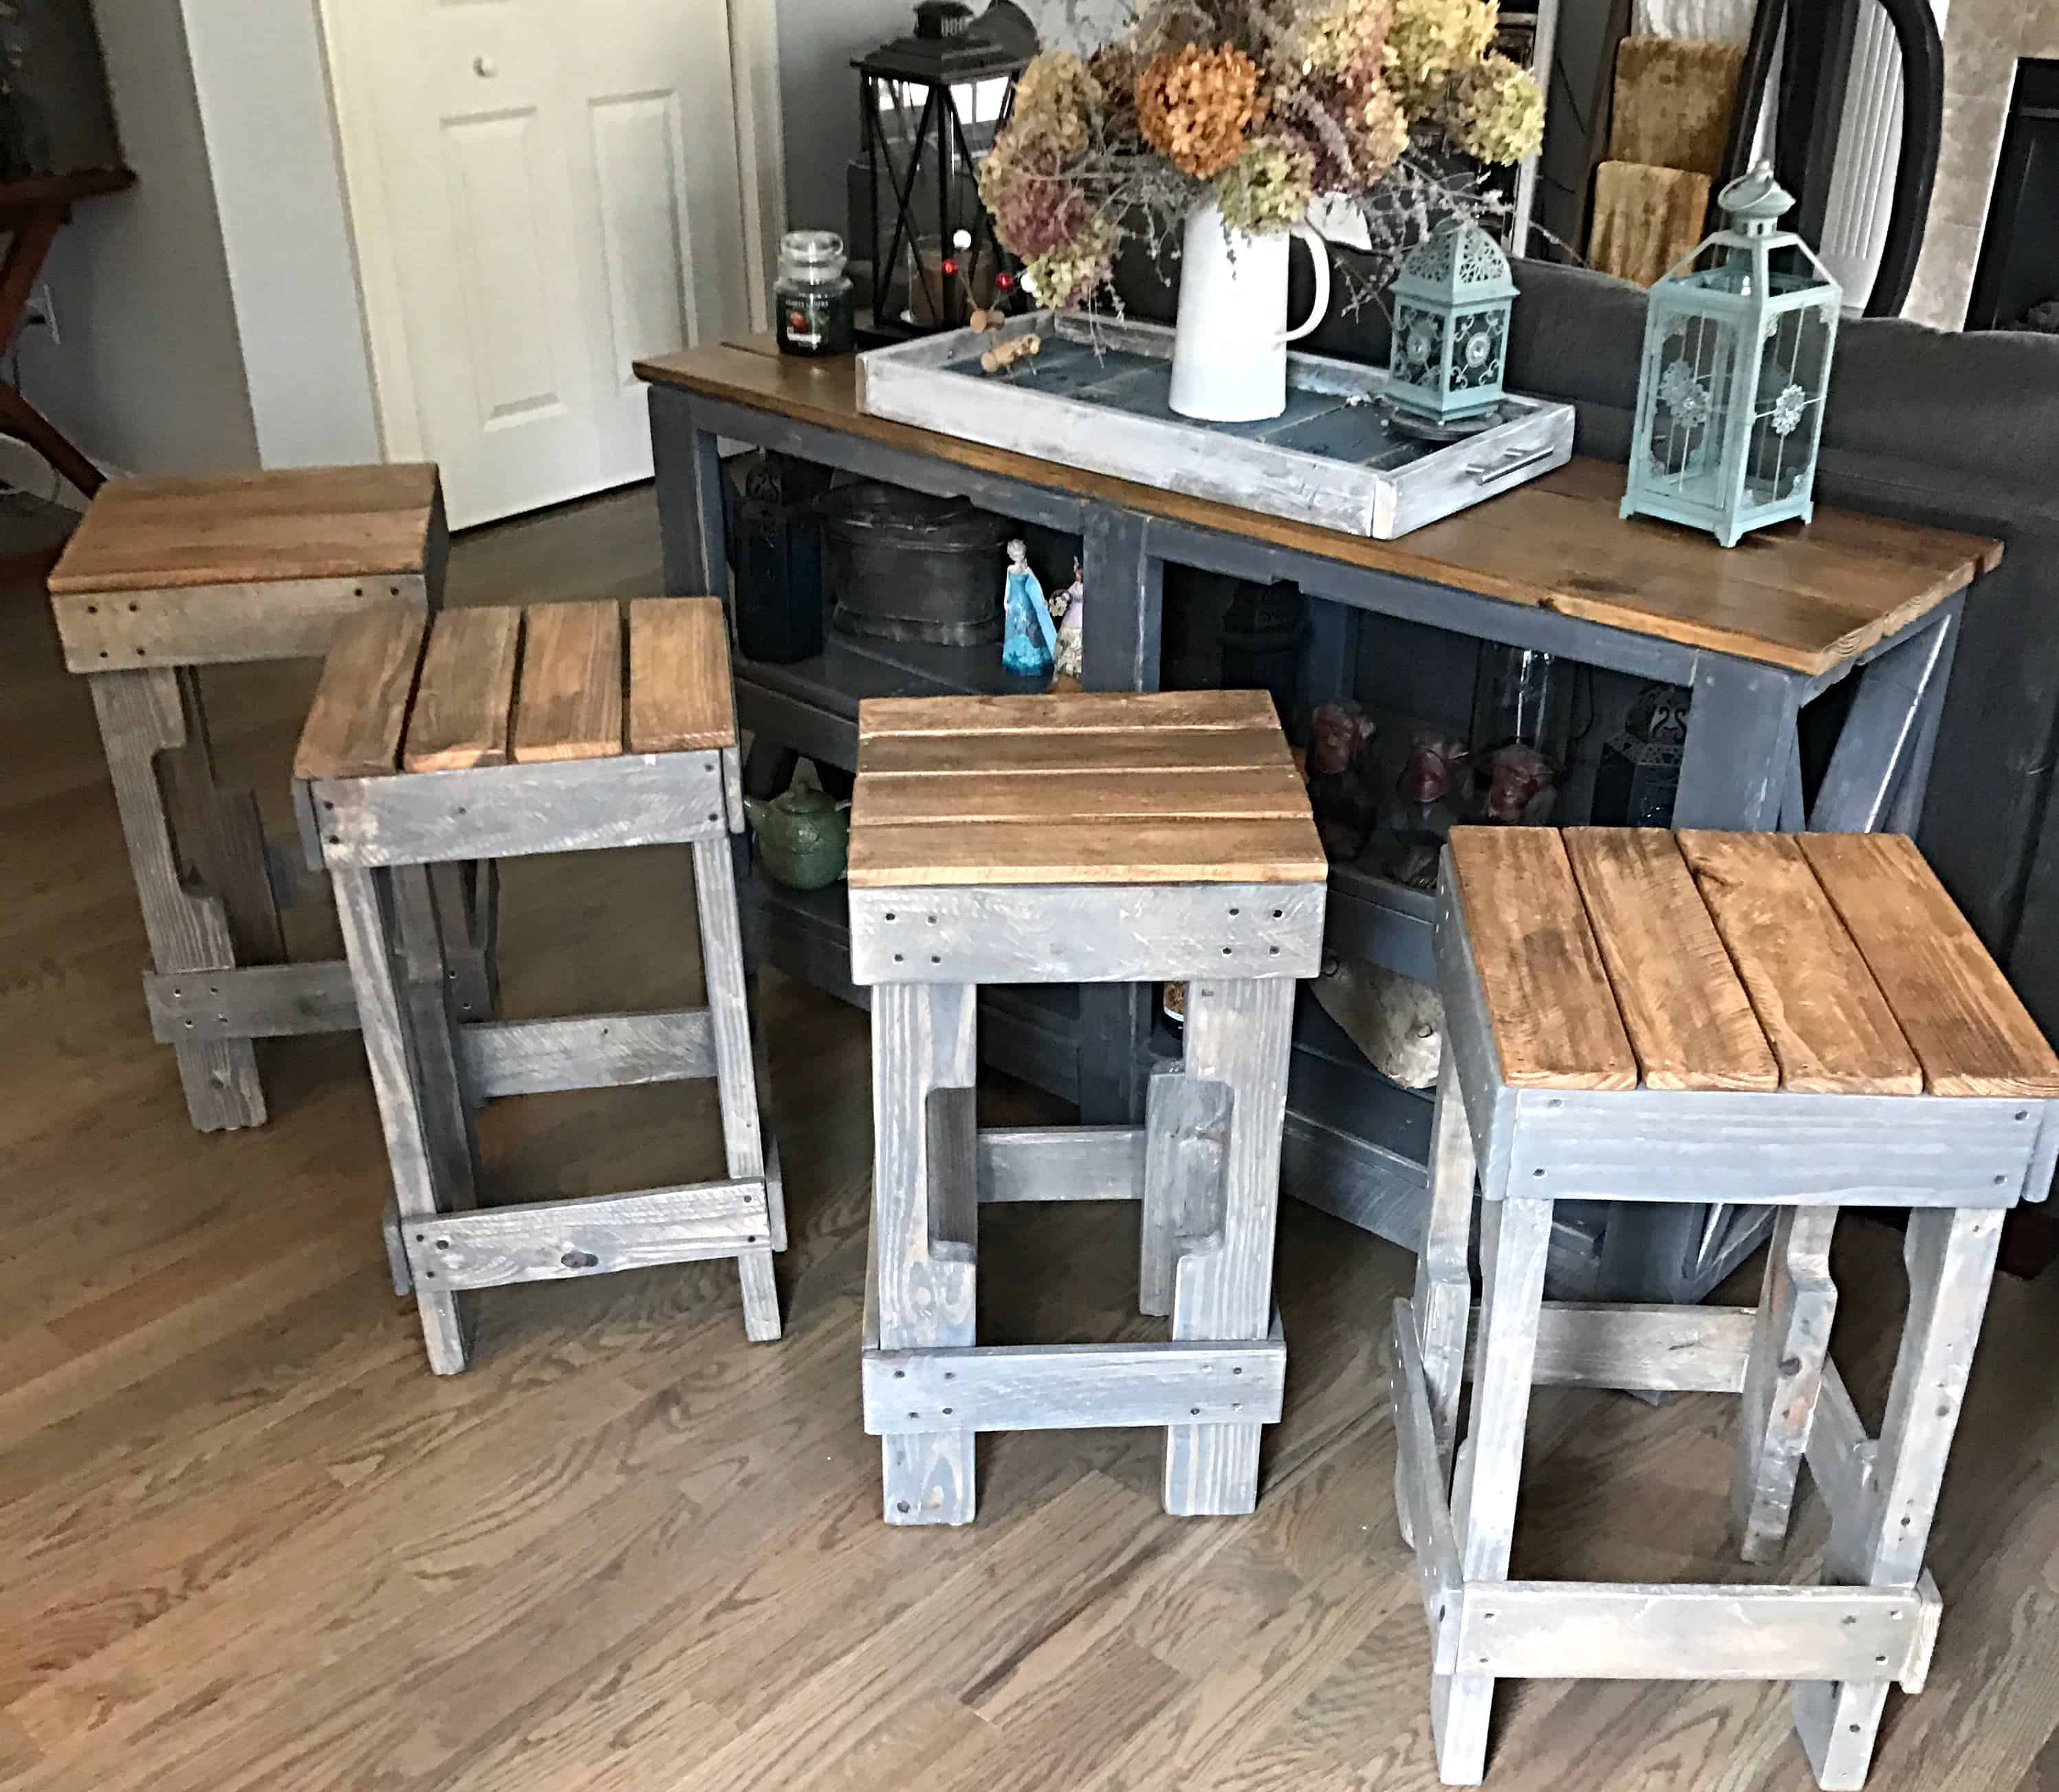 Pallet stringer bar stools look pretty cool 1001 pallets for Pallet ideas